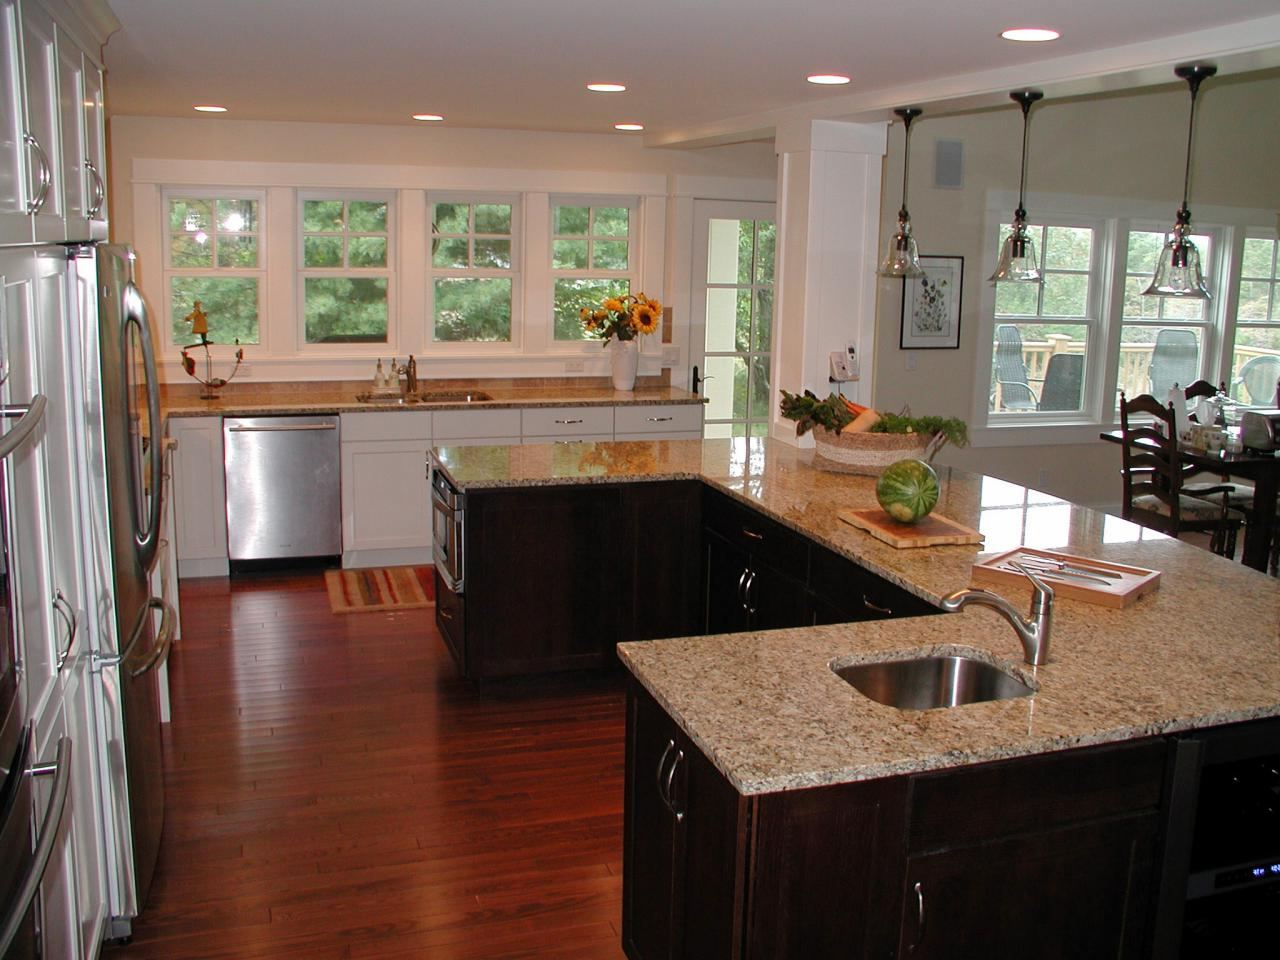 Kitchen Island Designs & Layouts - Great Lakes Granite ...